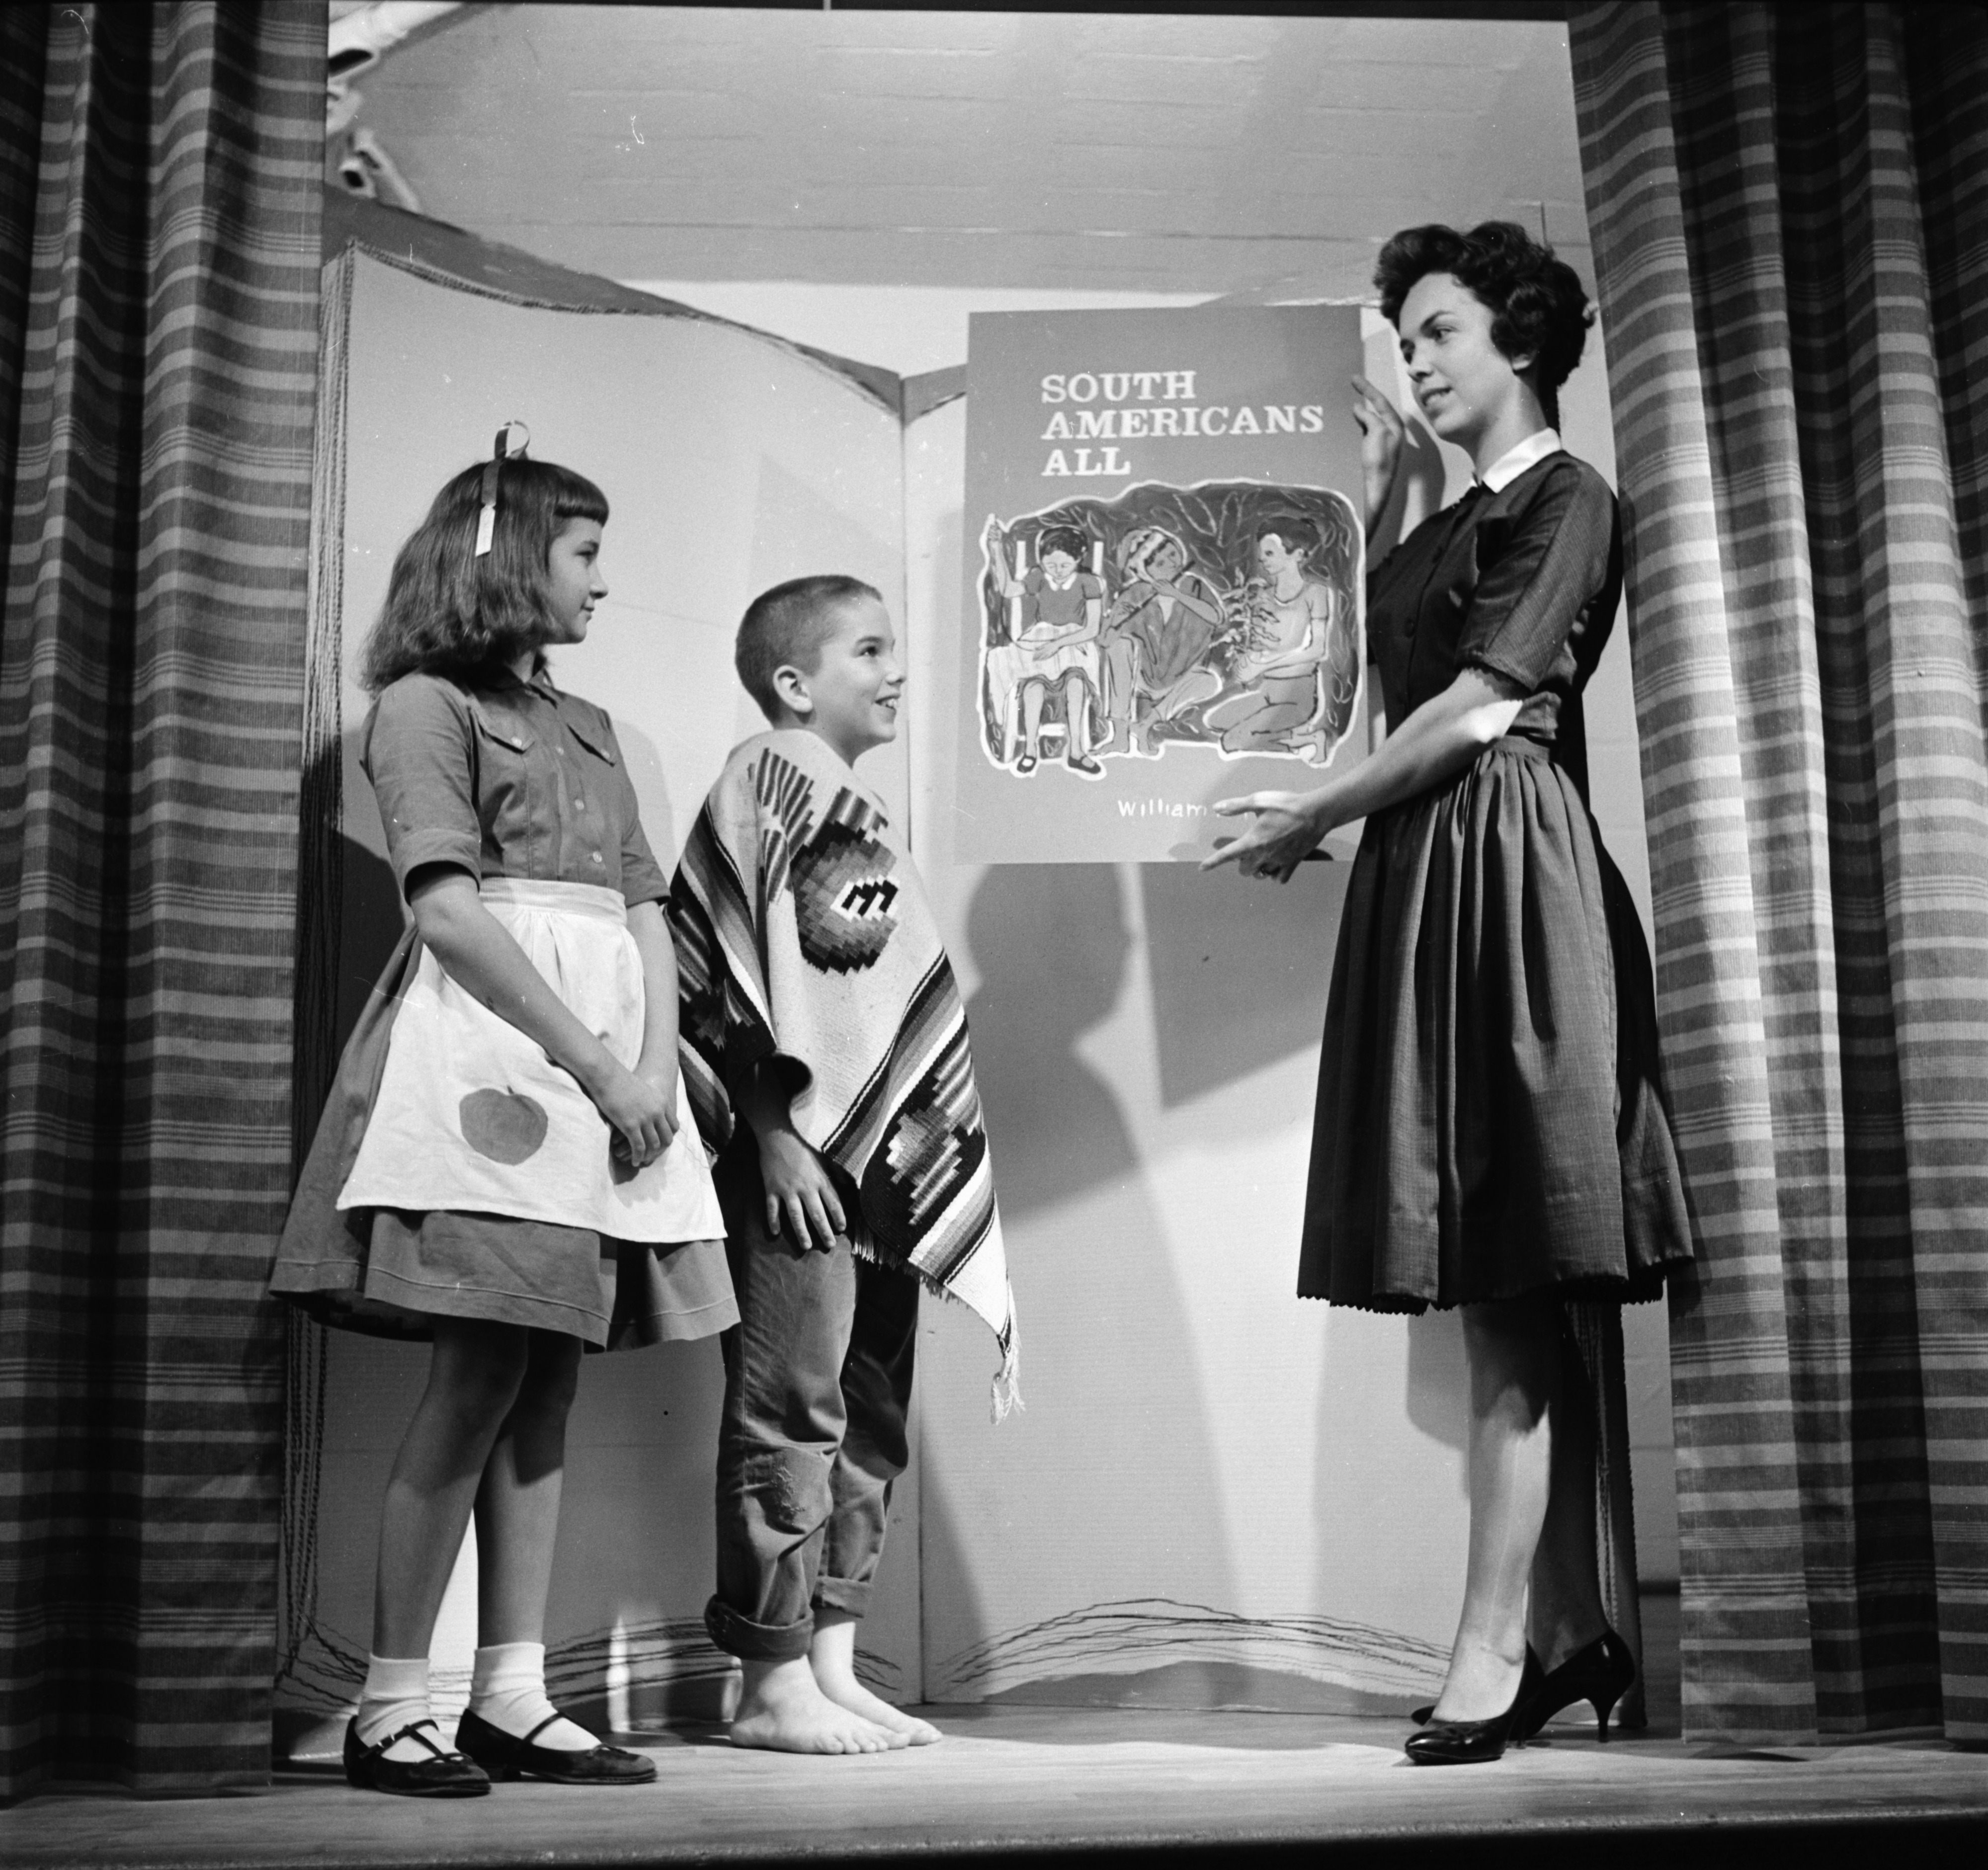 Skit On Children's Missionary Education Books Put On By First Presbyterian Church, October 1961 image